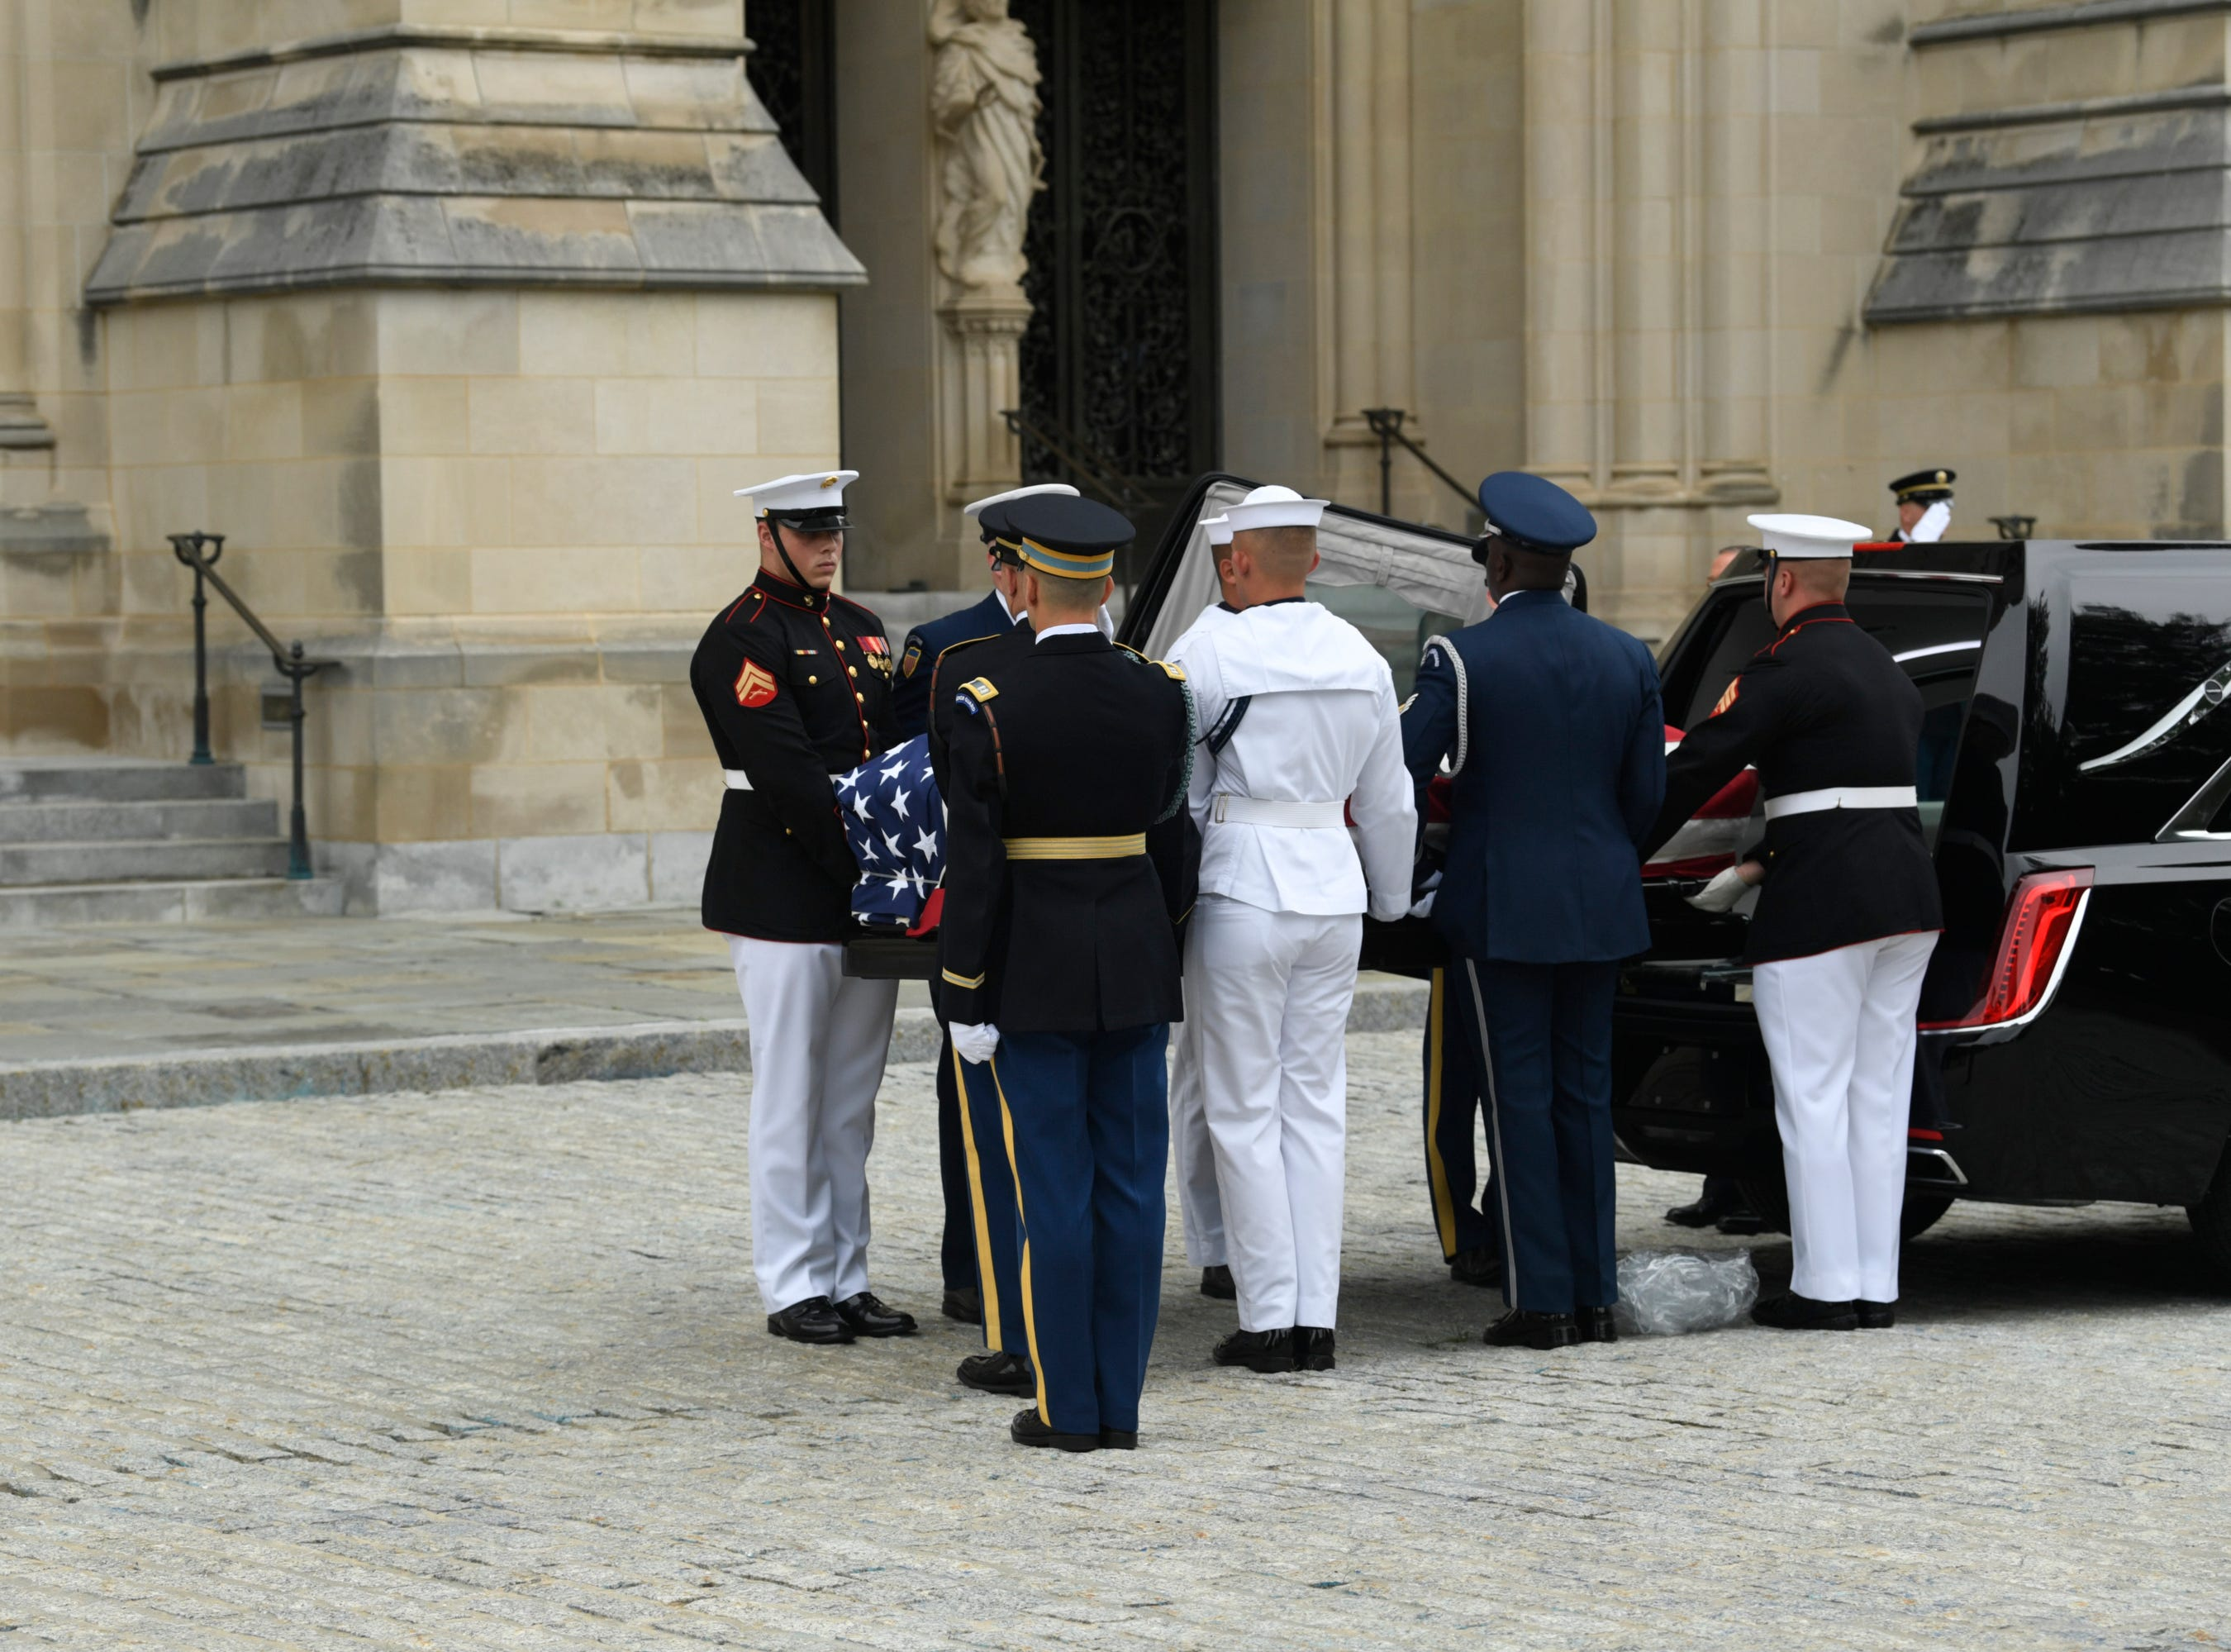 9/1/18 9:43:22 AM -- Washington, DC, U.S.A  -- A piece of plastic falls to the ground as the flag-draped casket bearing John McCain is carried into the National Cathedral in Washington for a memorial service on Sept. 1, 2018. Sen. McCain died on Aug. 25 --    Photo by Jasper Colt, USA TODAY Staff